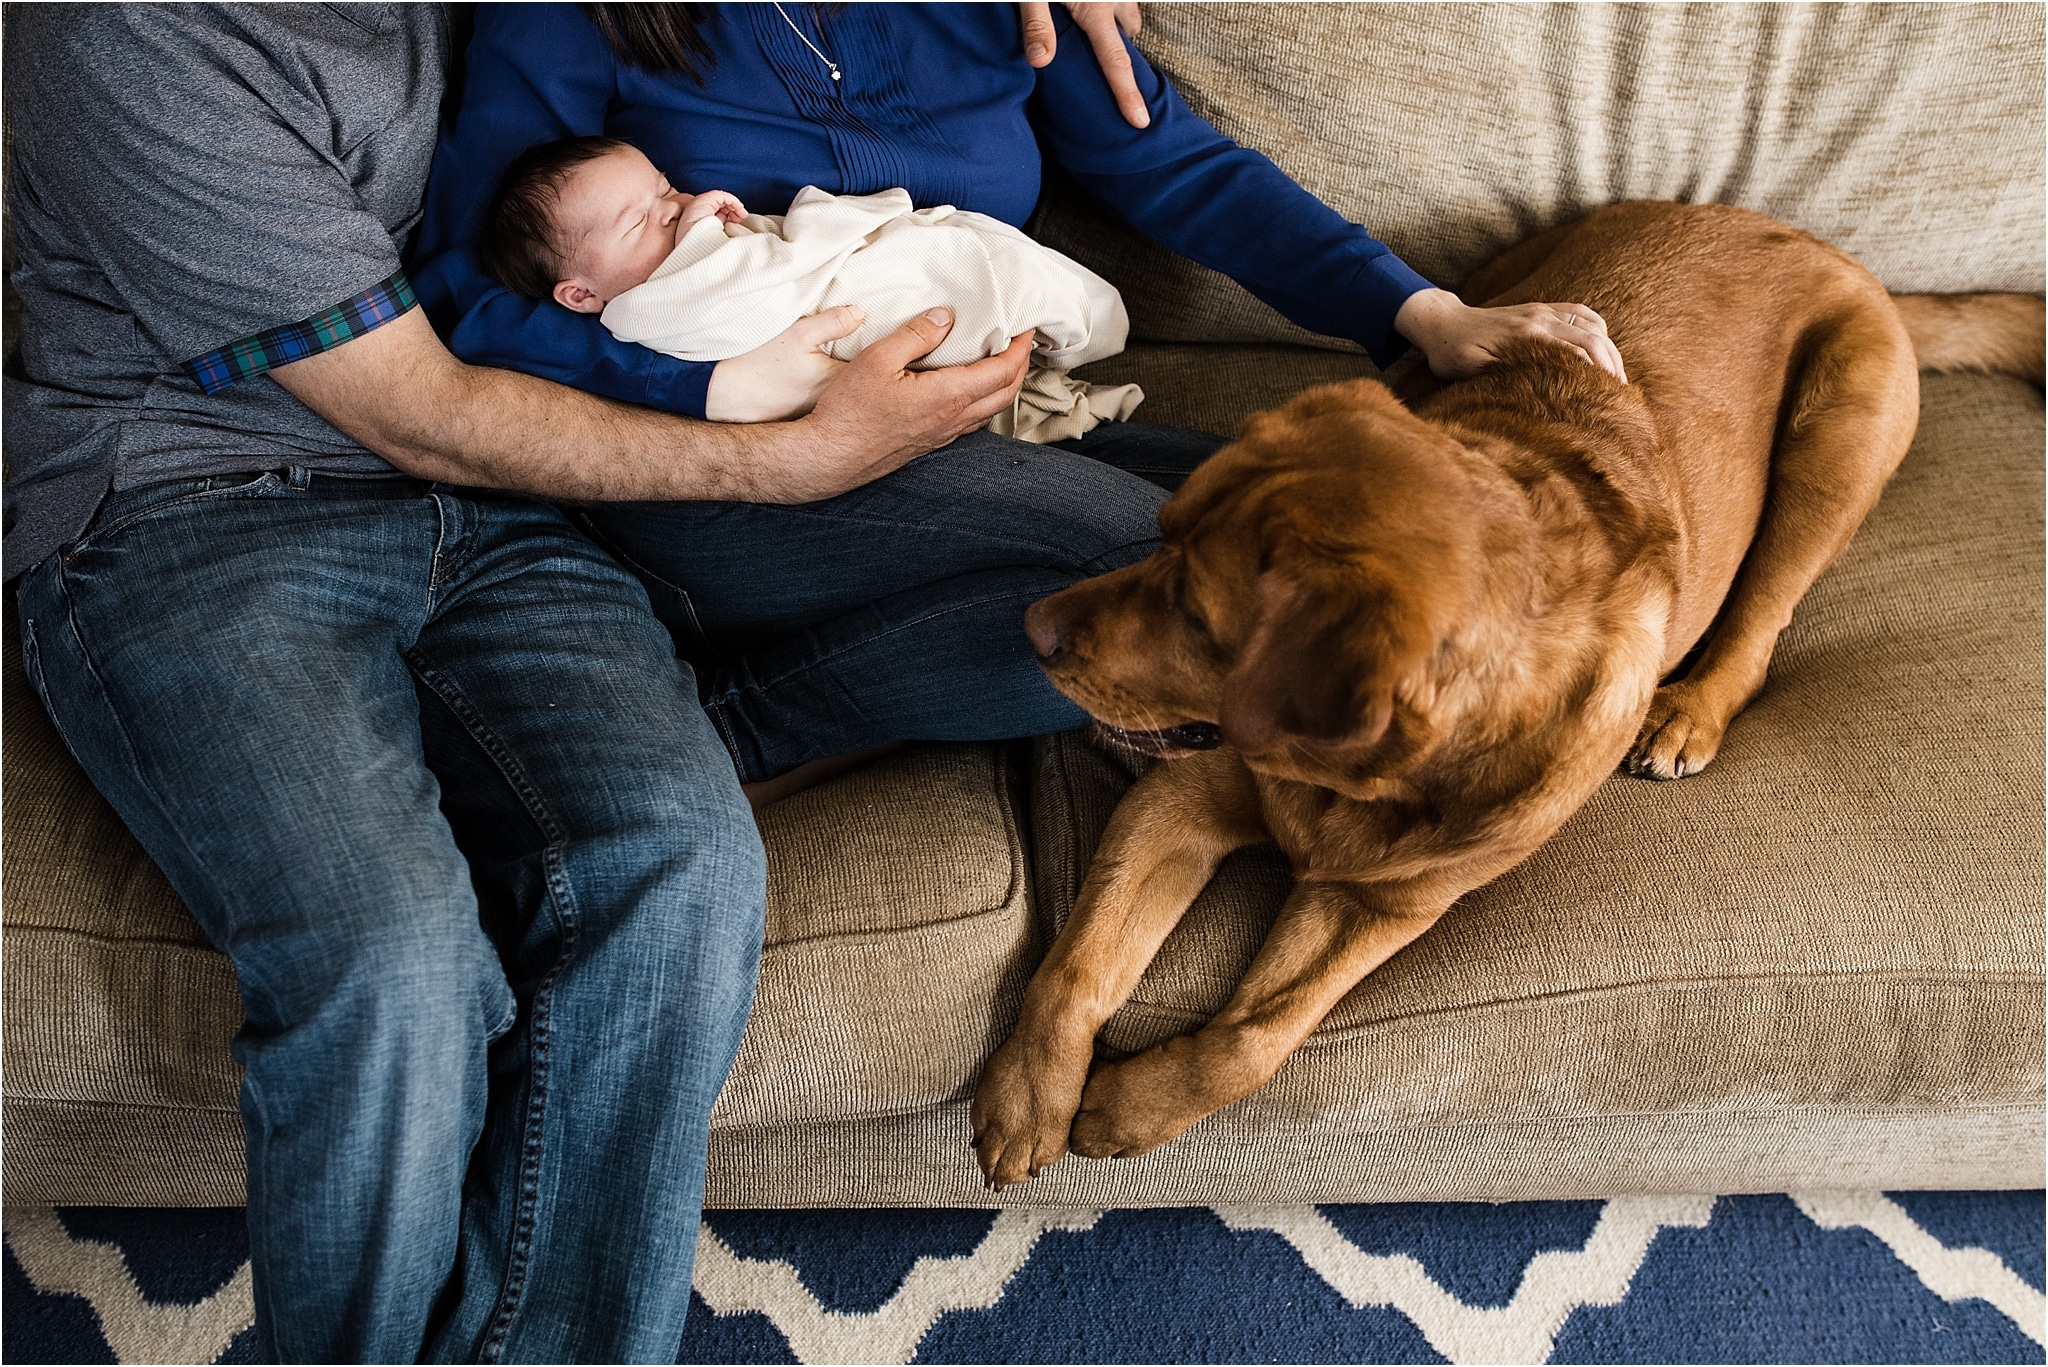 natural newborn photos at home with family dog